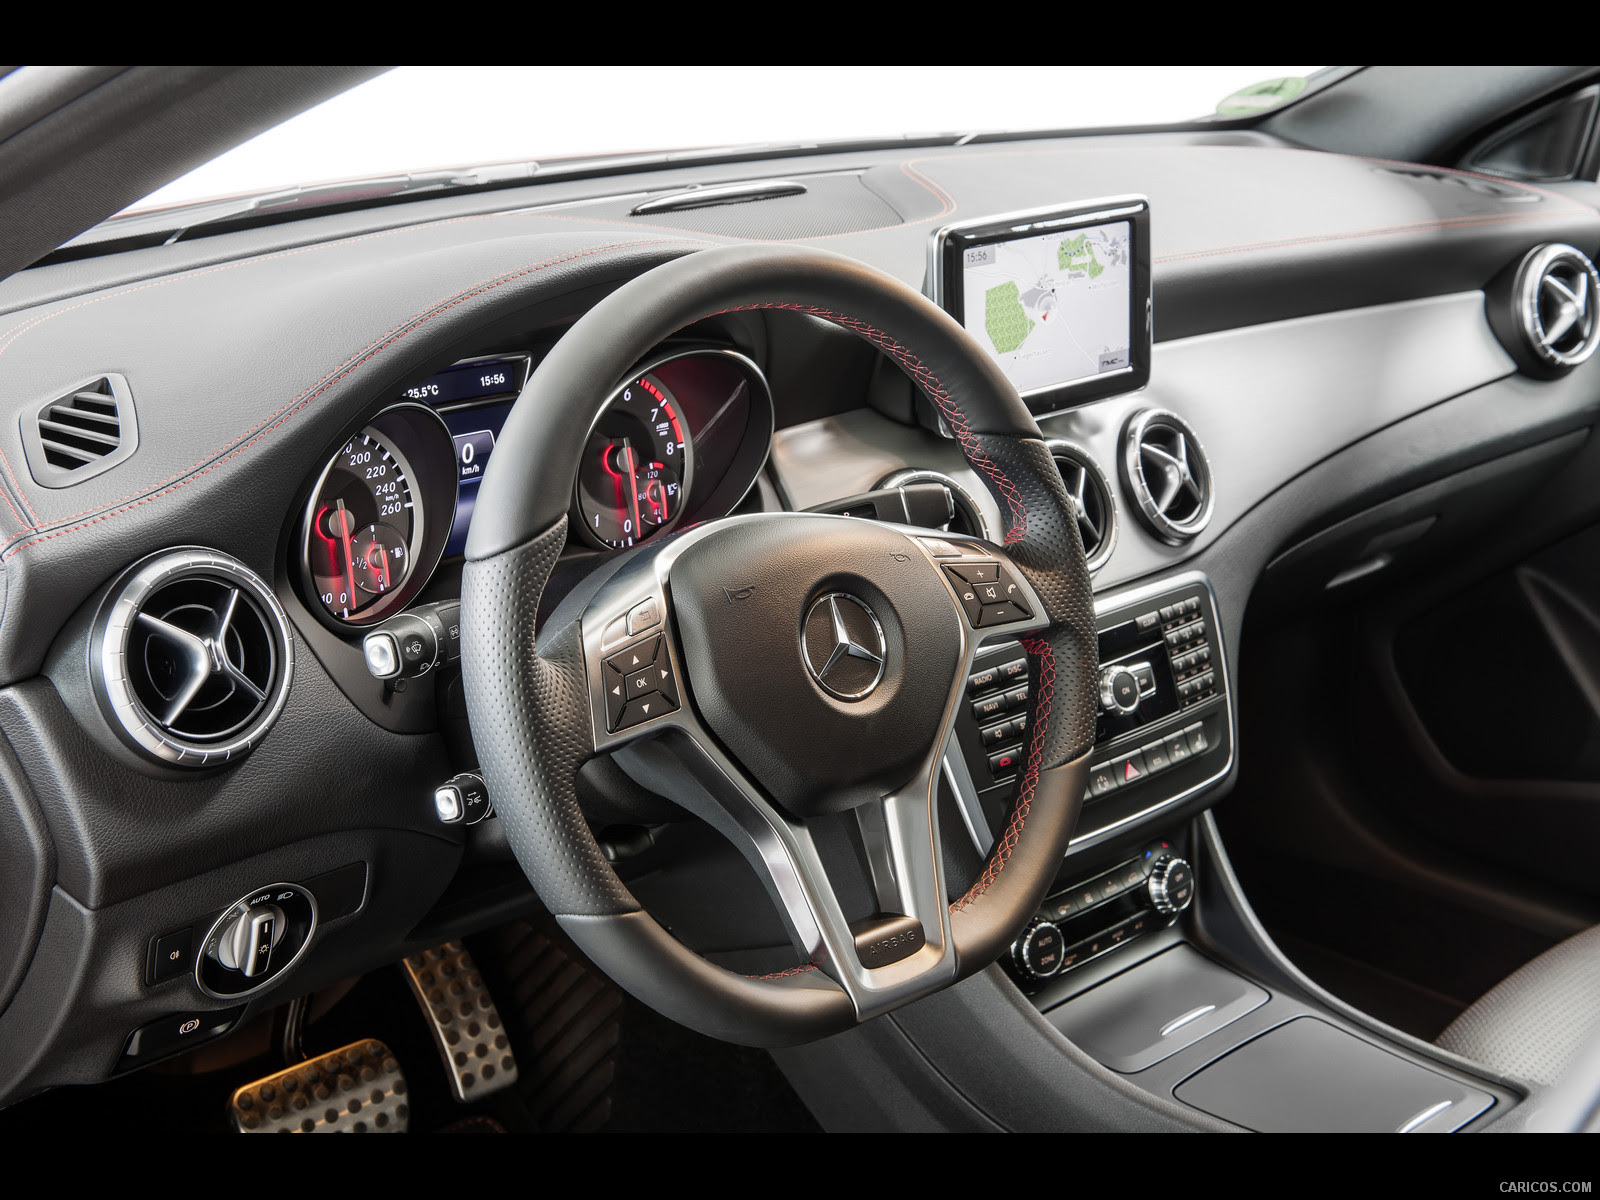 2013 Mercedes-Benz CLA 45 AMG Racing Series Concept - Interior | Wallpaper #18 | 1600x1200